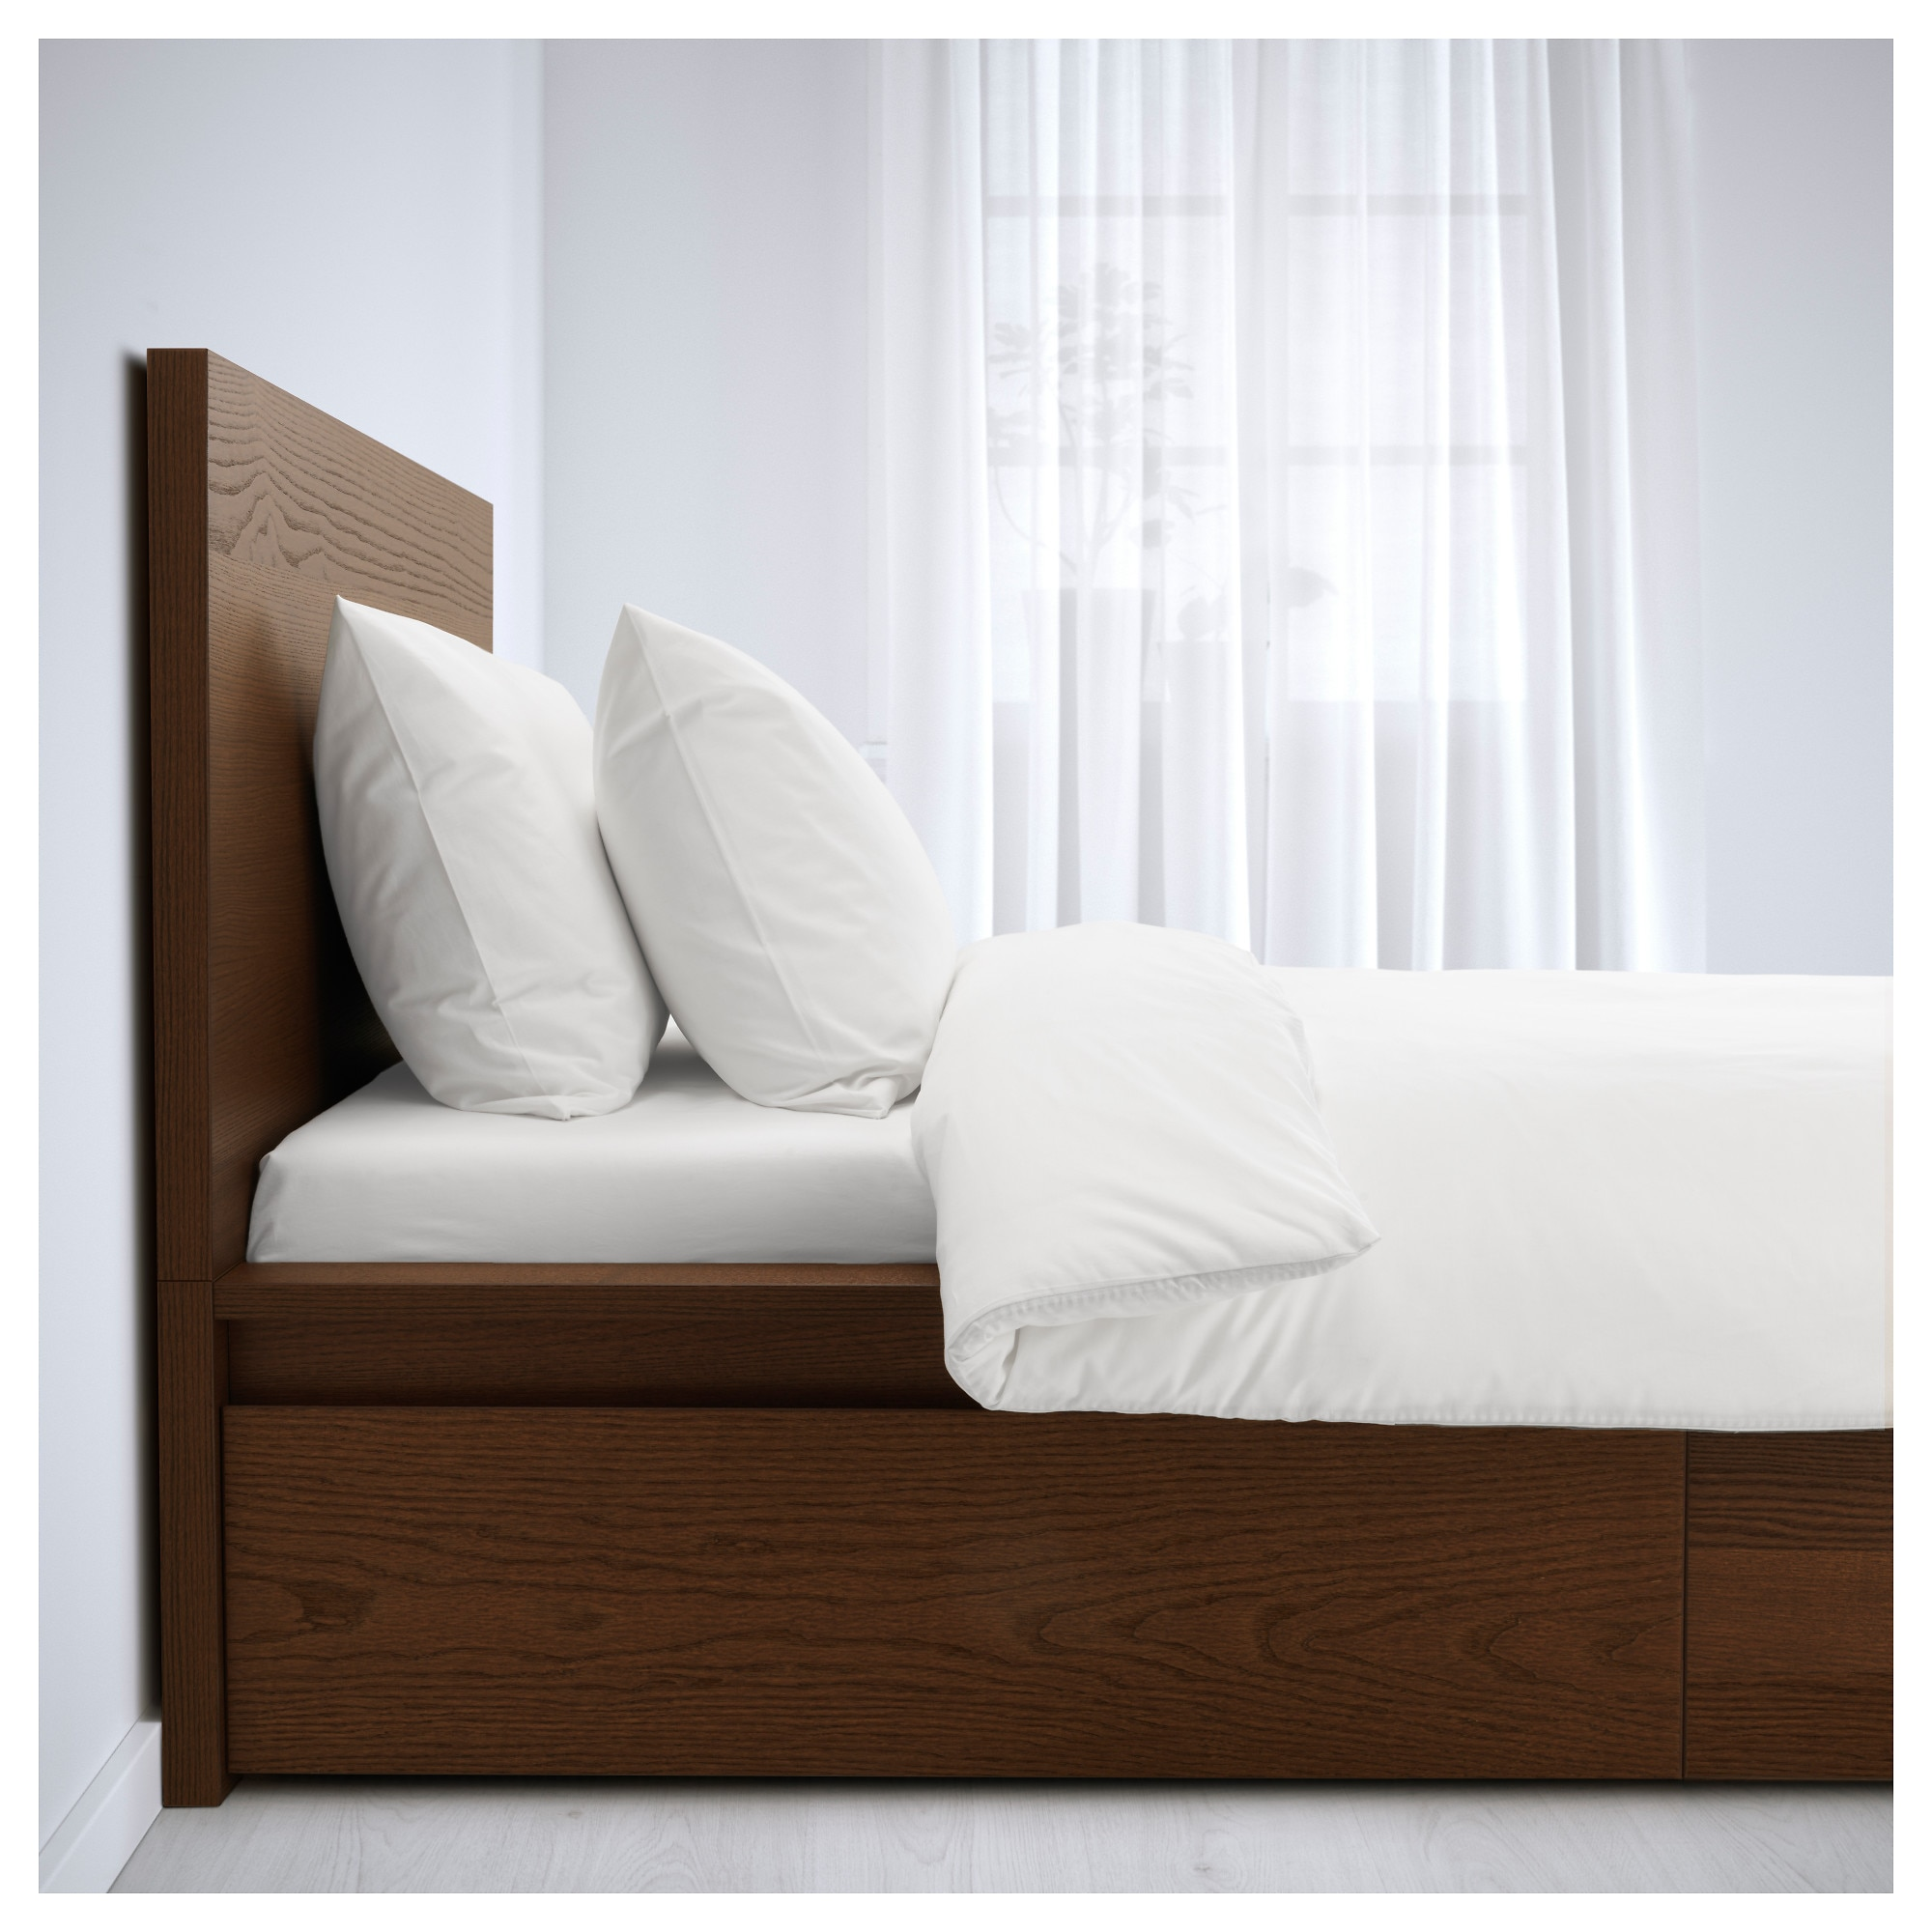 MALM High bed frame 2 storage boxes brown stained ash veneer